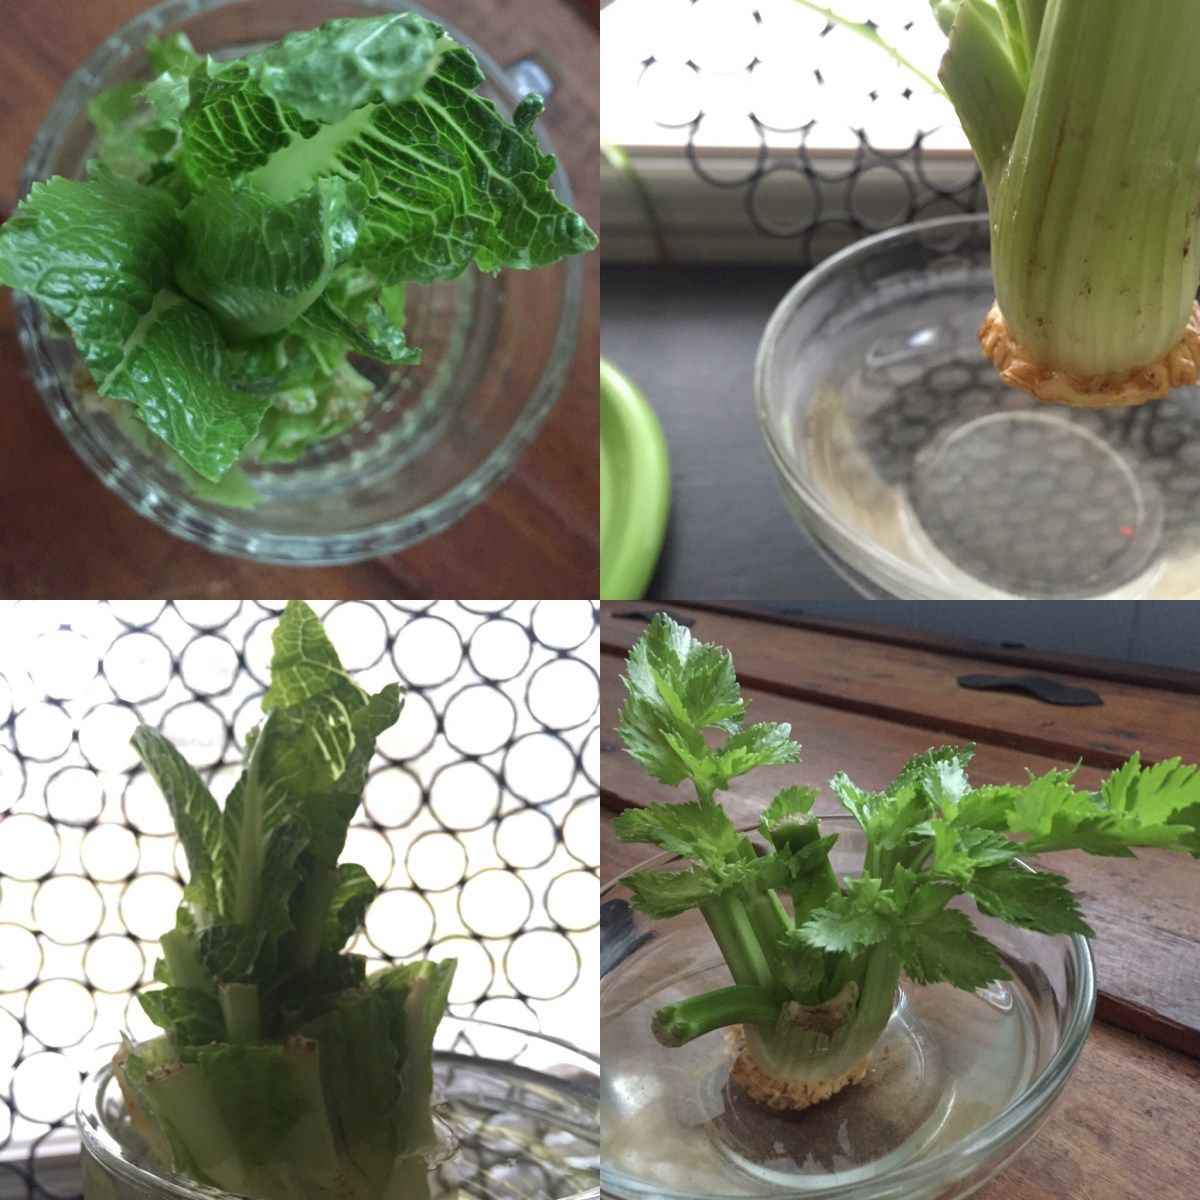 Regrow Lettuce And Celery From Scraps